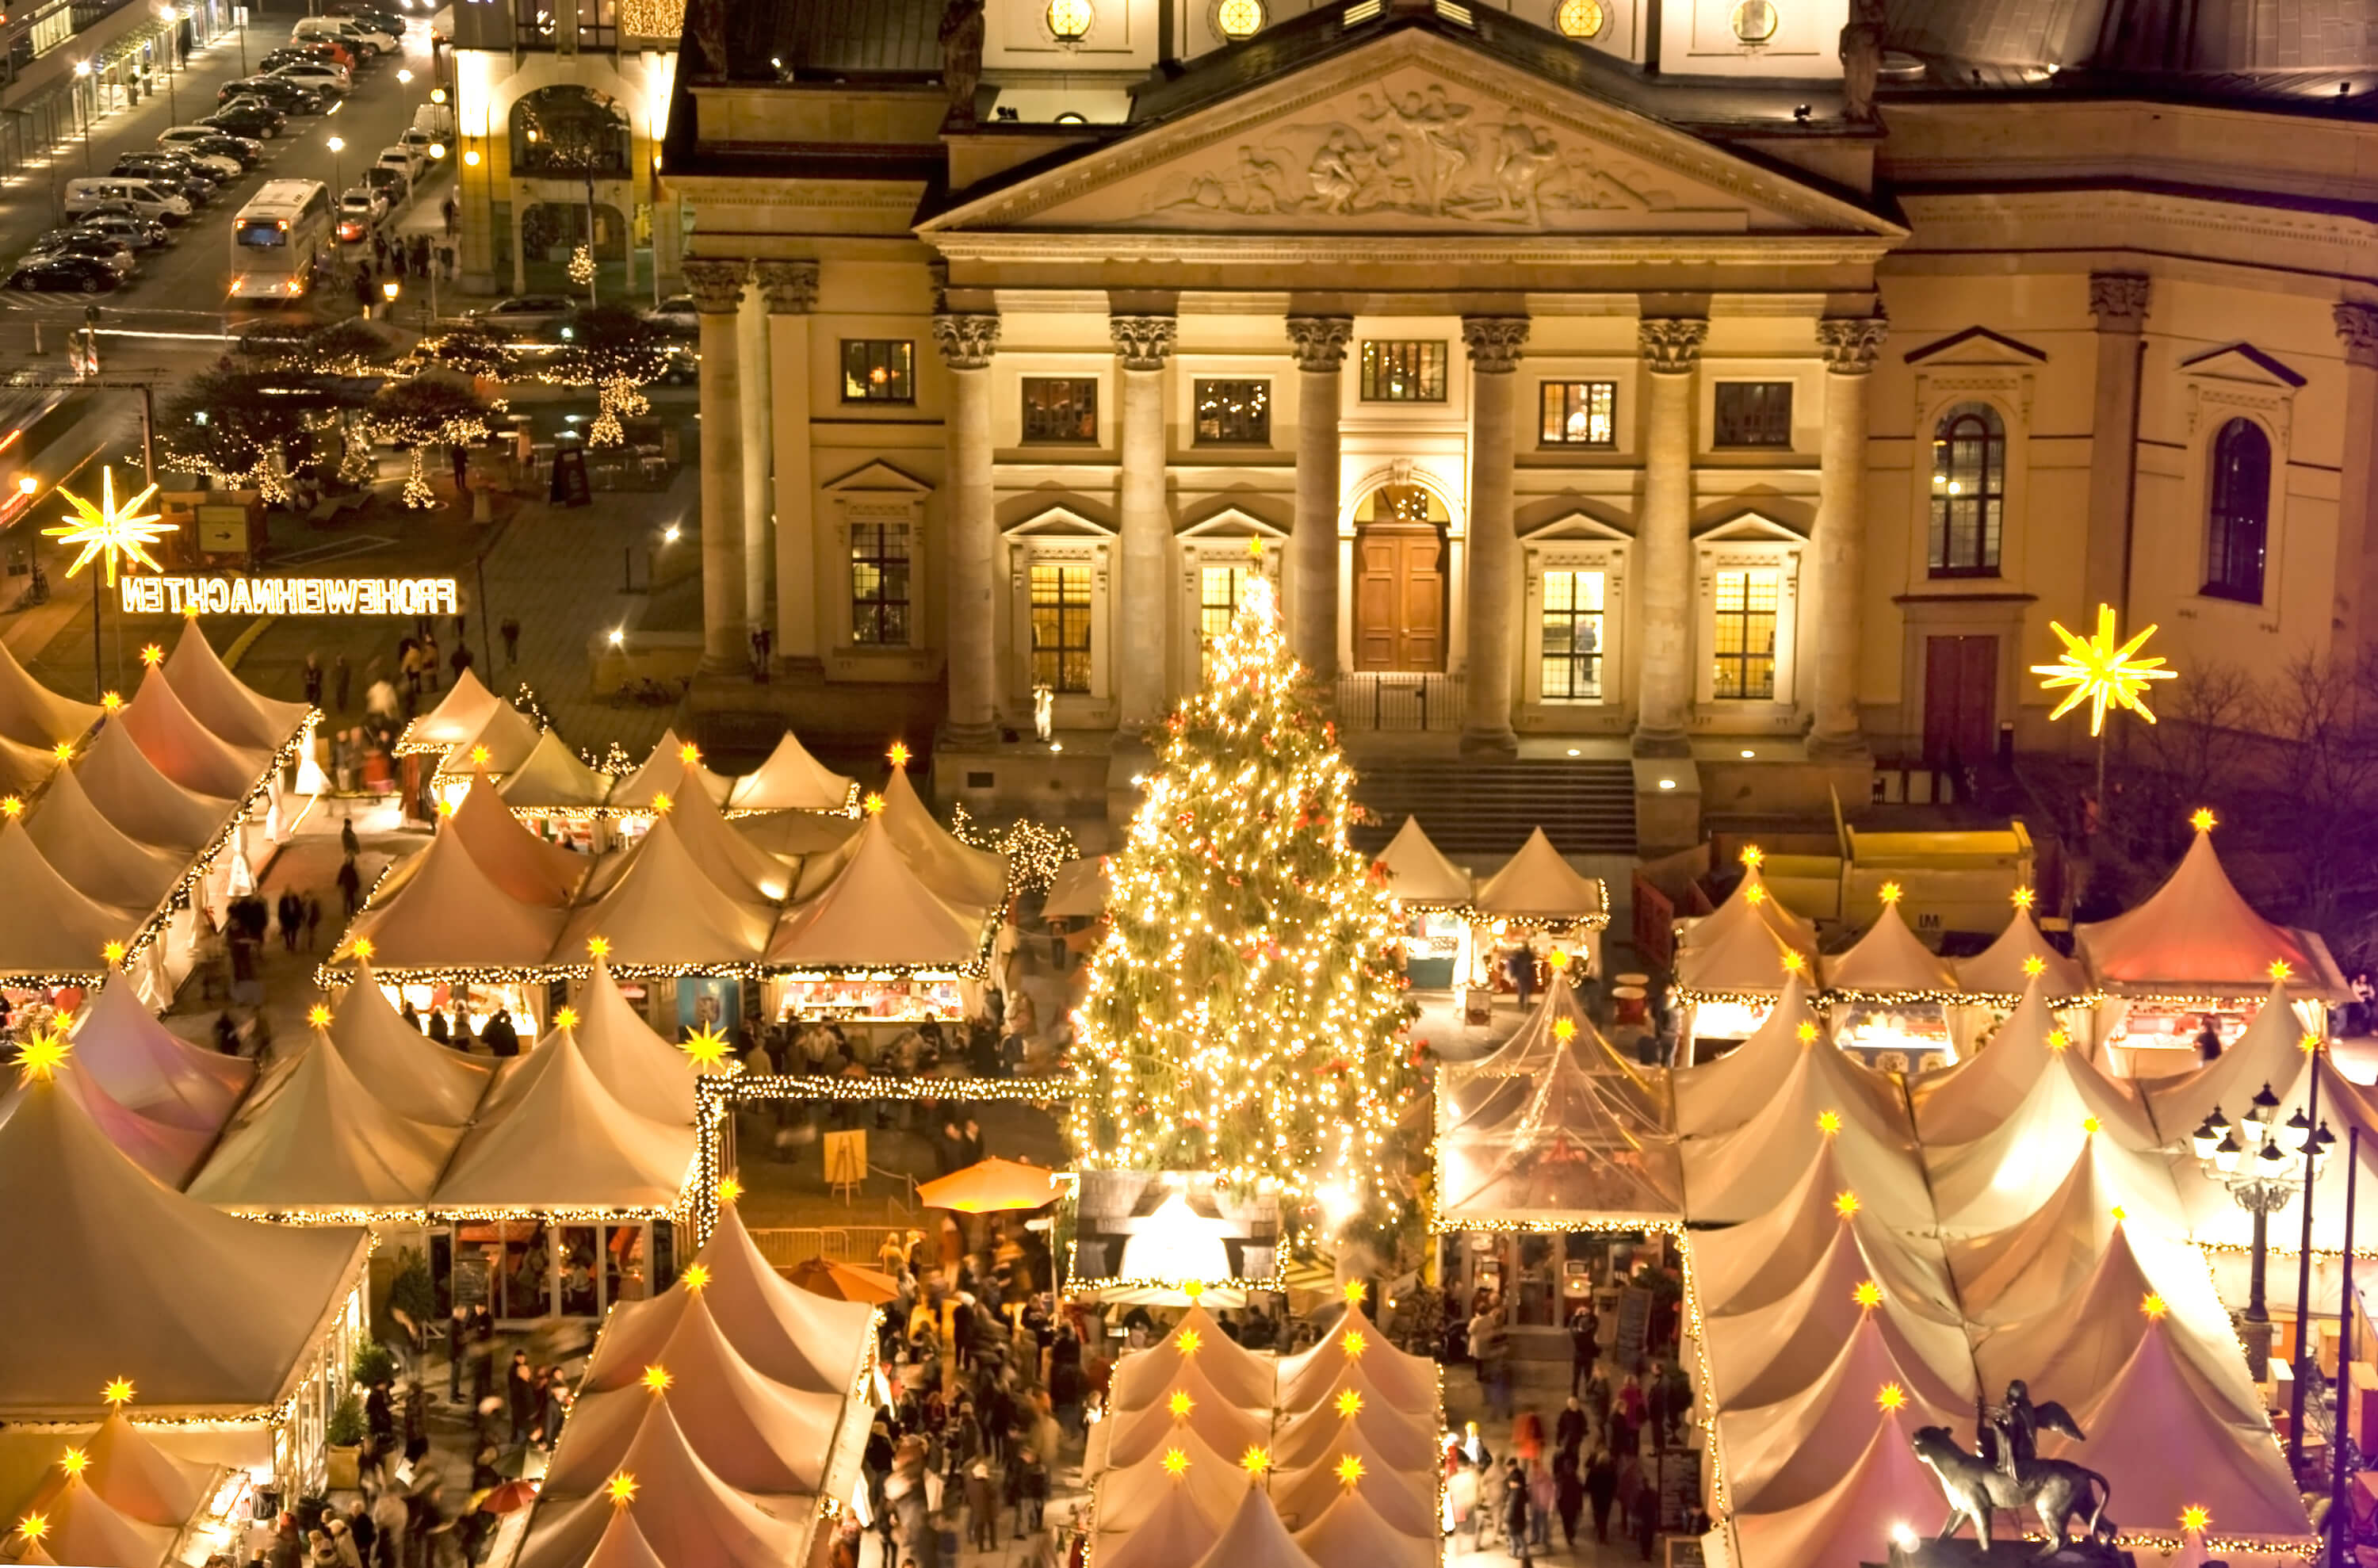 Berlin Christmas Market.The 3 Best Christmas Markets In Berlin To Visit This Winter